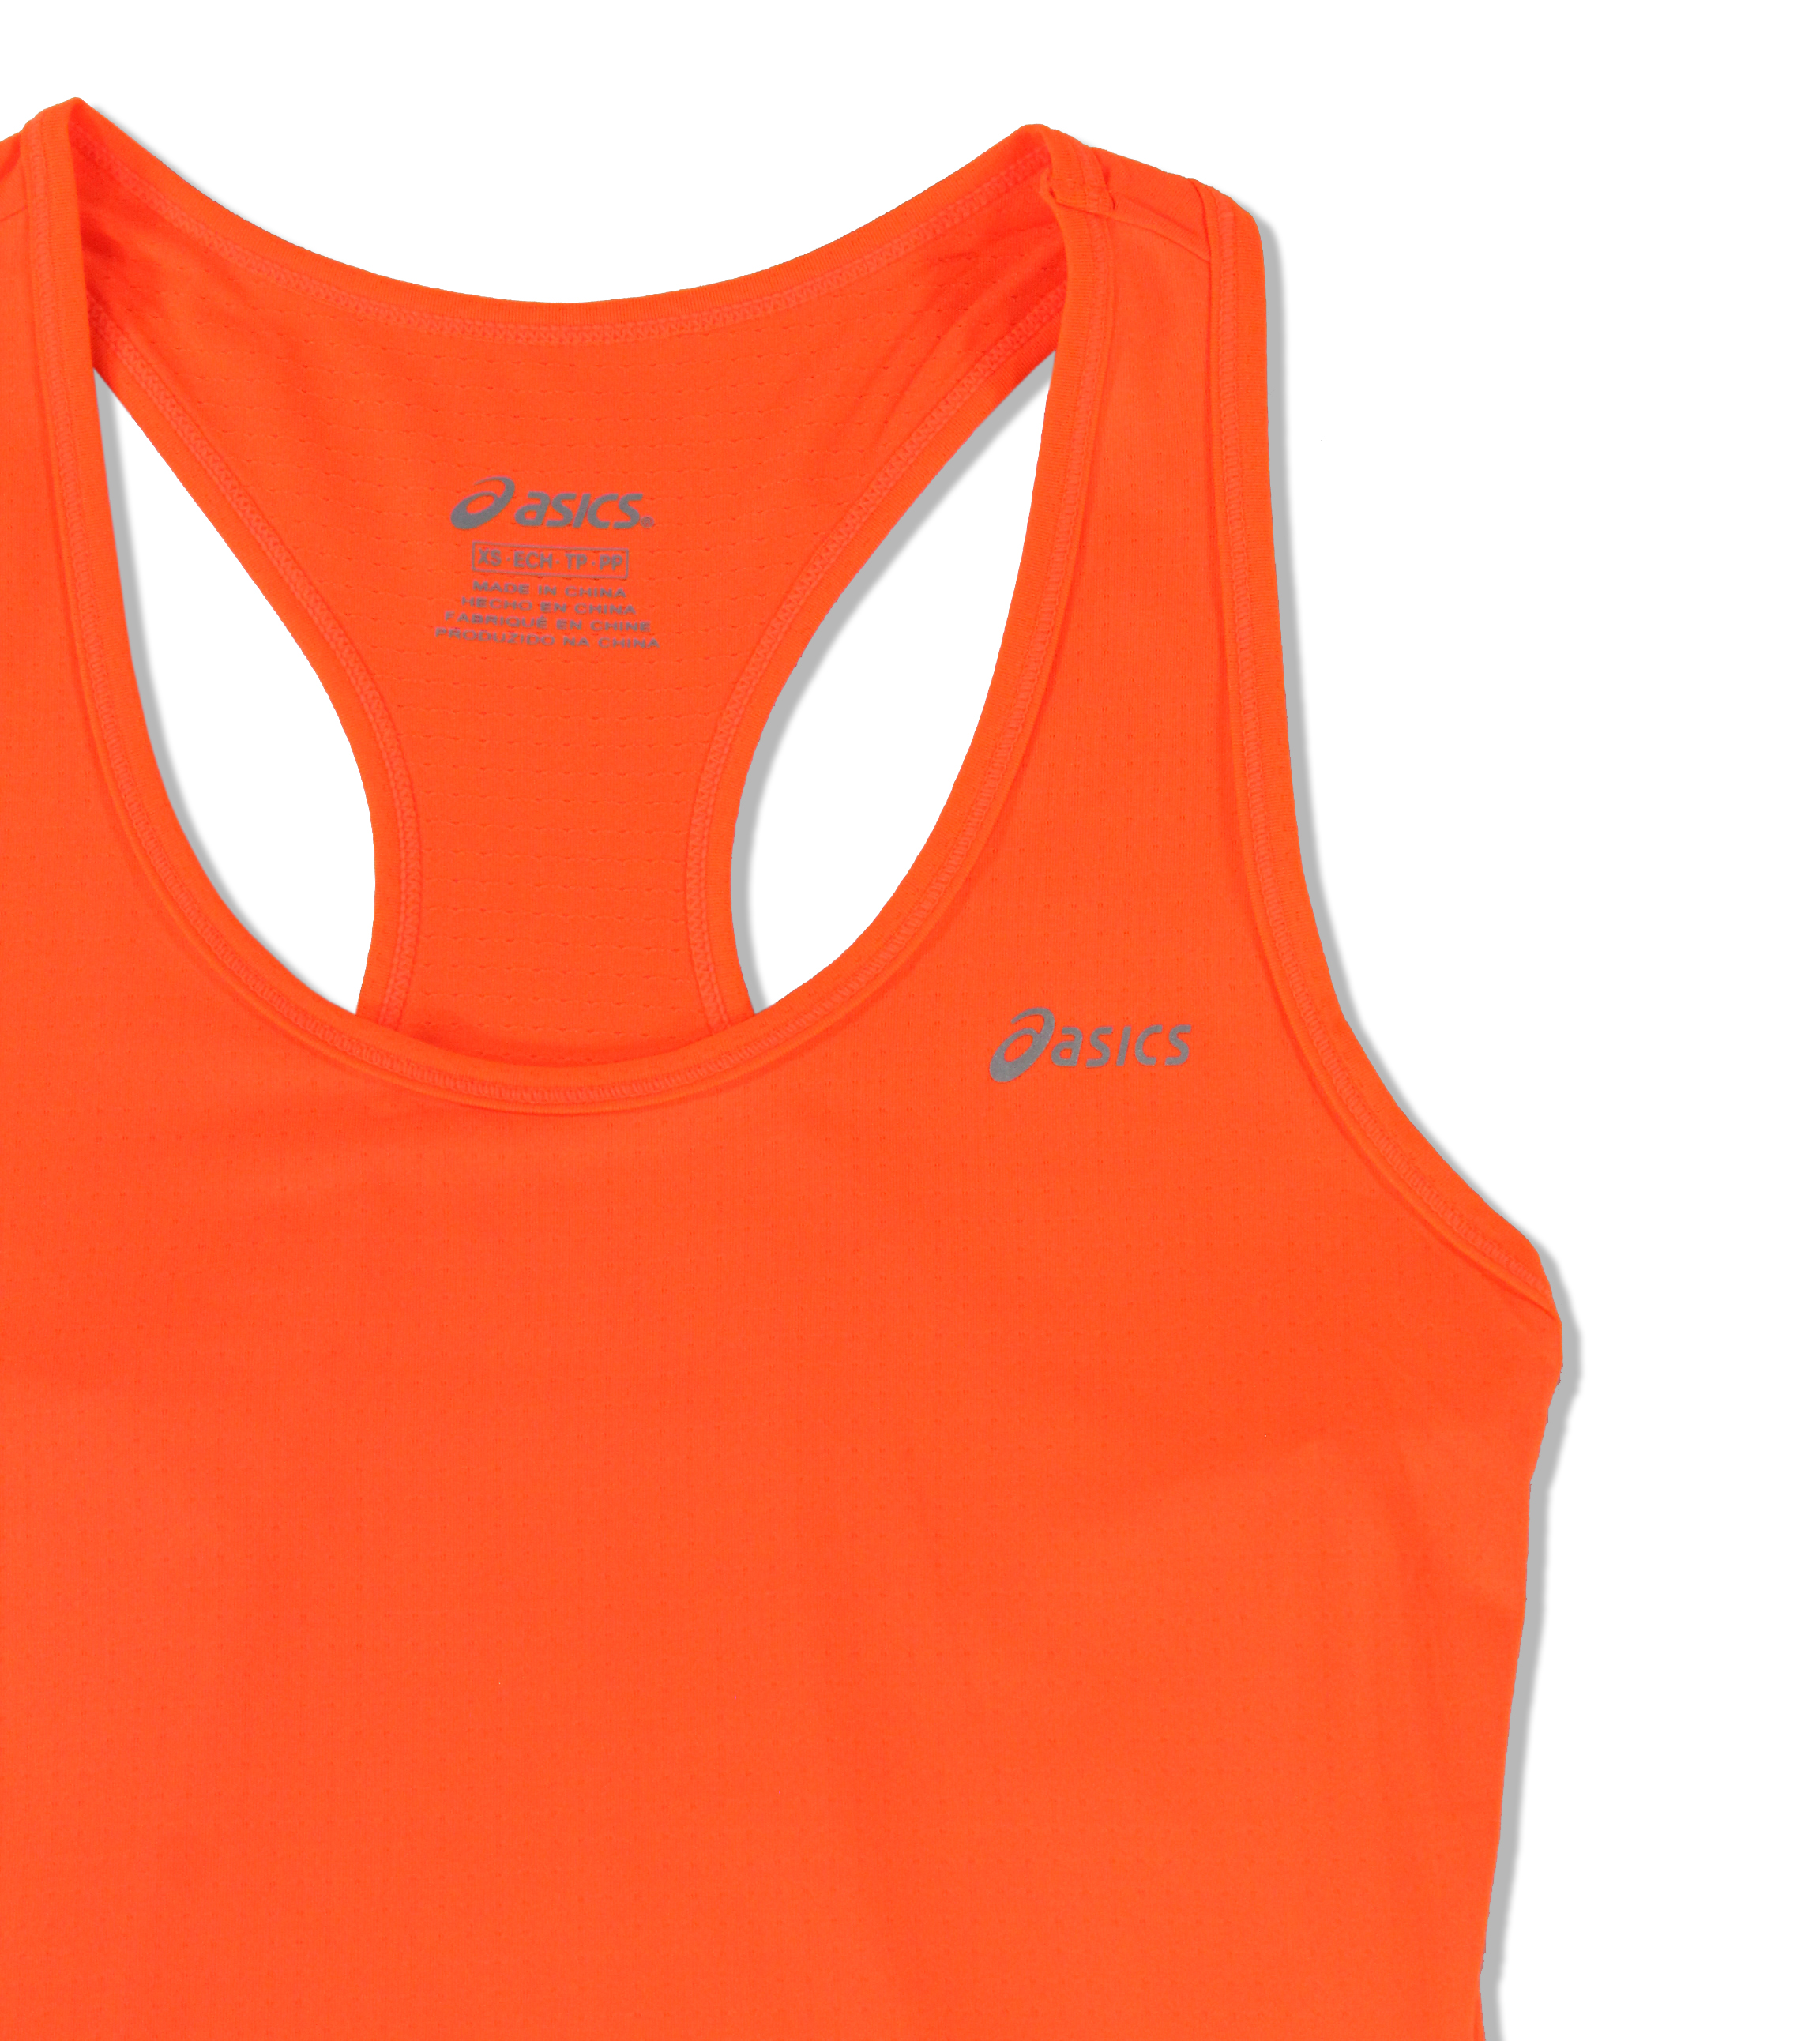 Asics-NEW-Solid-Tone-Women-039-s-Performance-Racerback-ASX-Dry-Tank-Top thumbnail 4